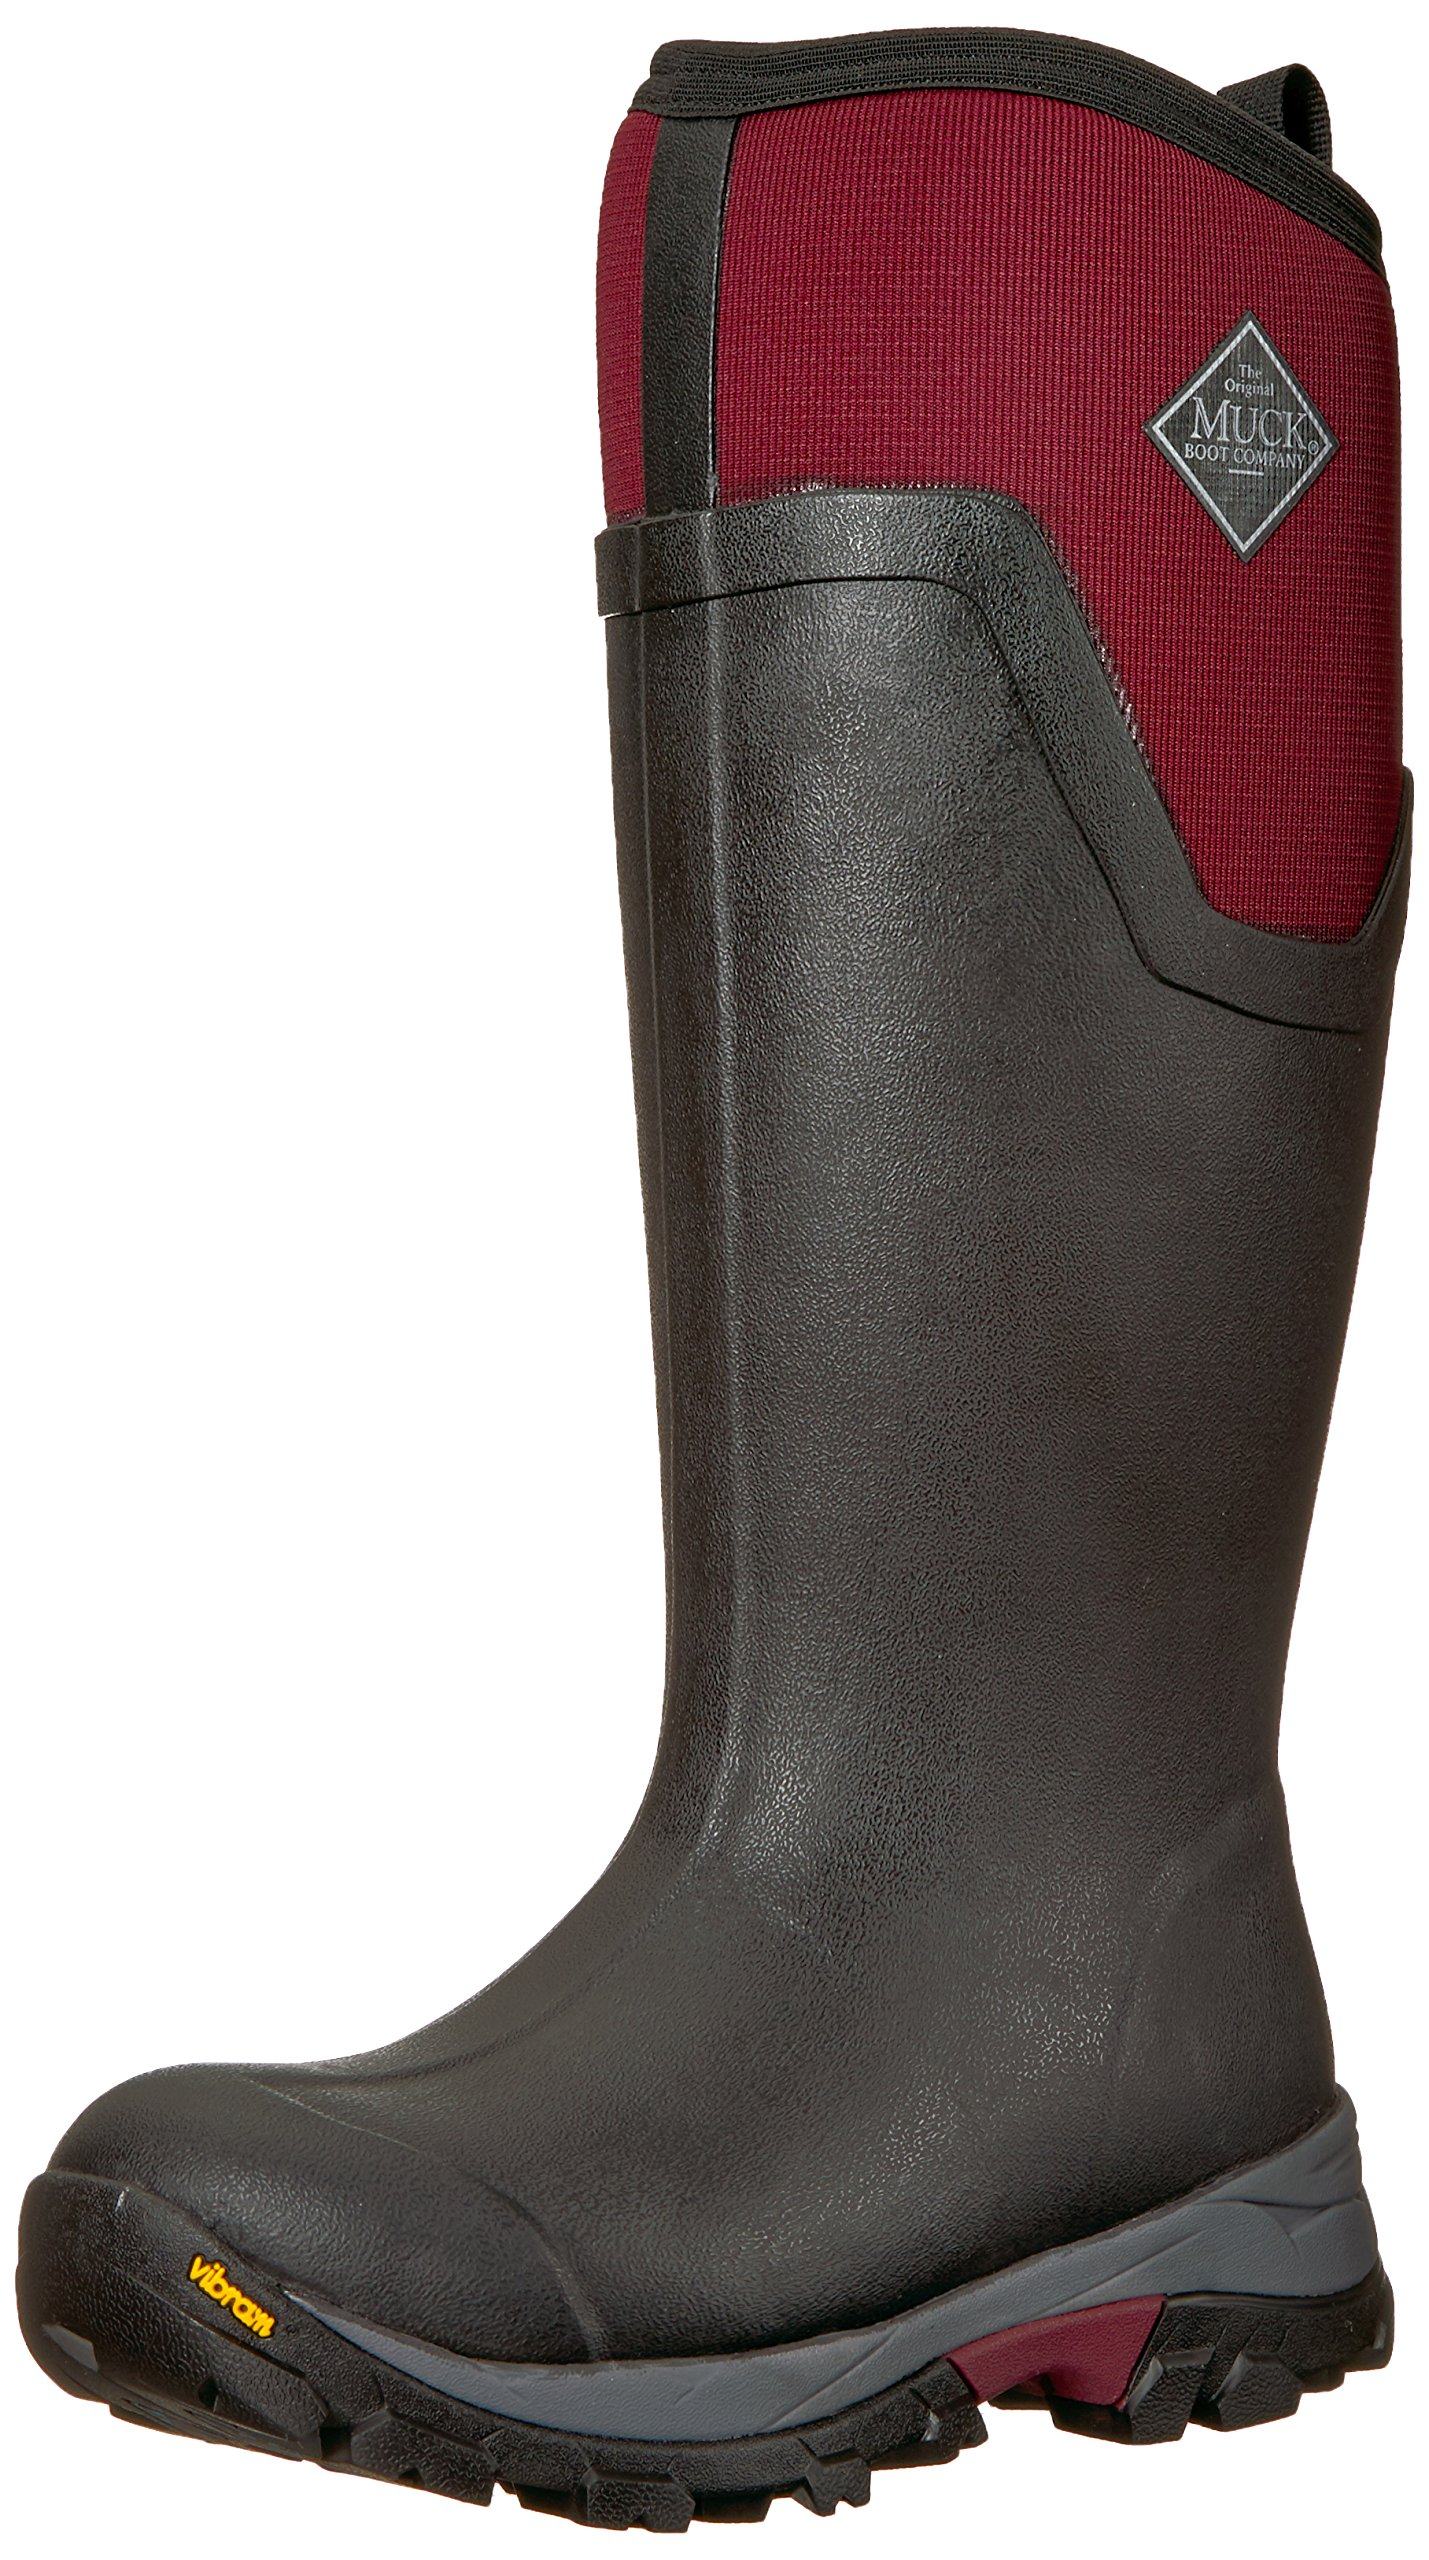 Muck Boot Women's Arctic Ice Tall Work Boot, Black/Windsor Wine, 9 M US by Muck Boot